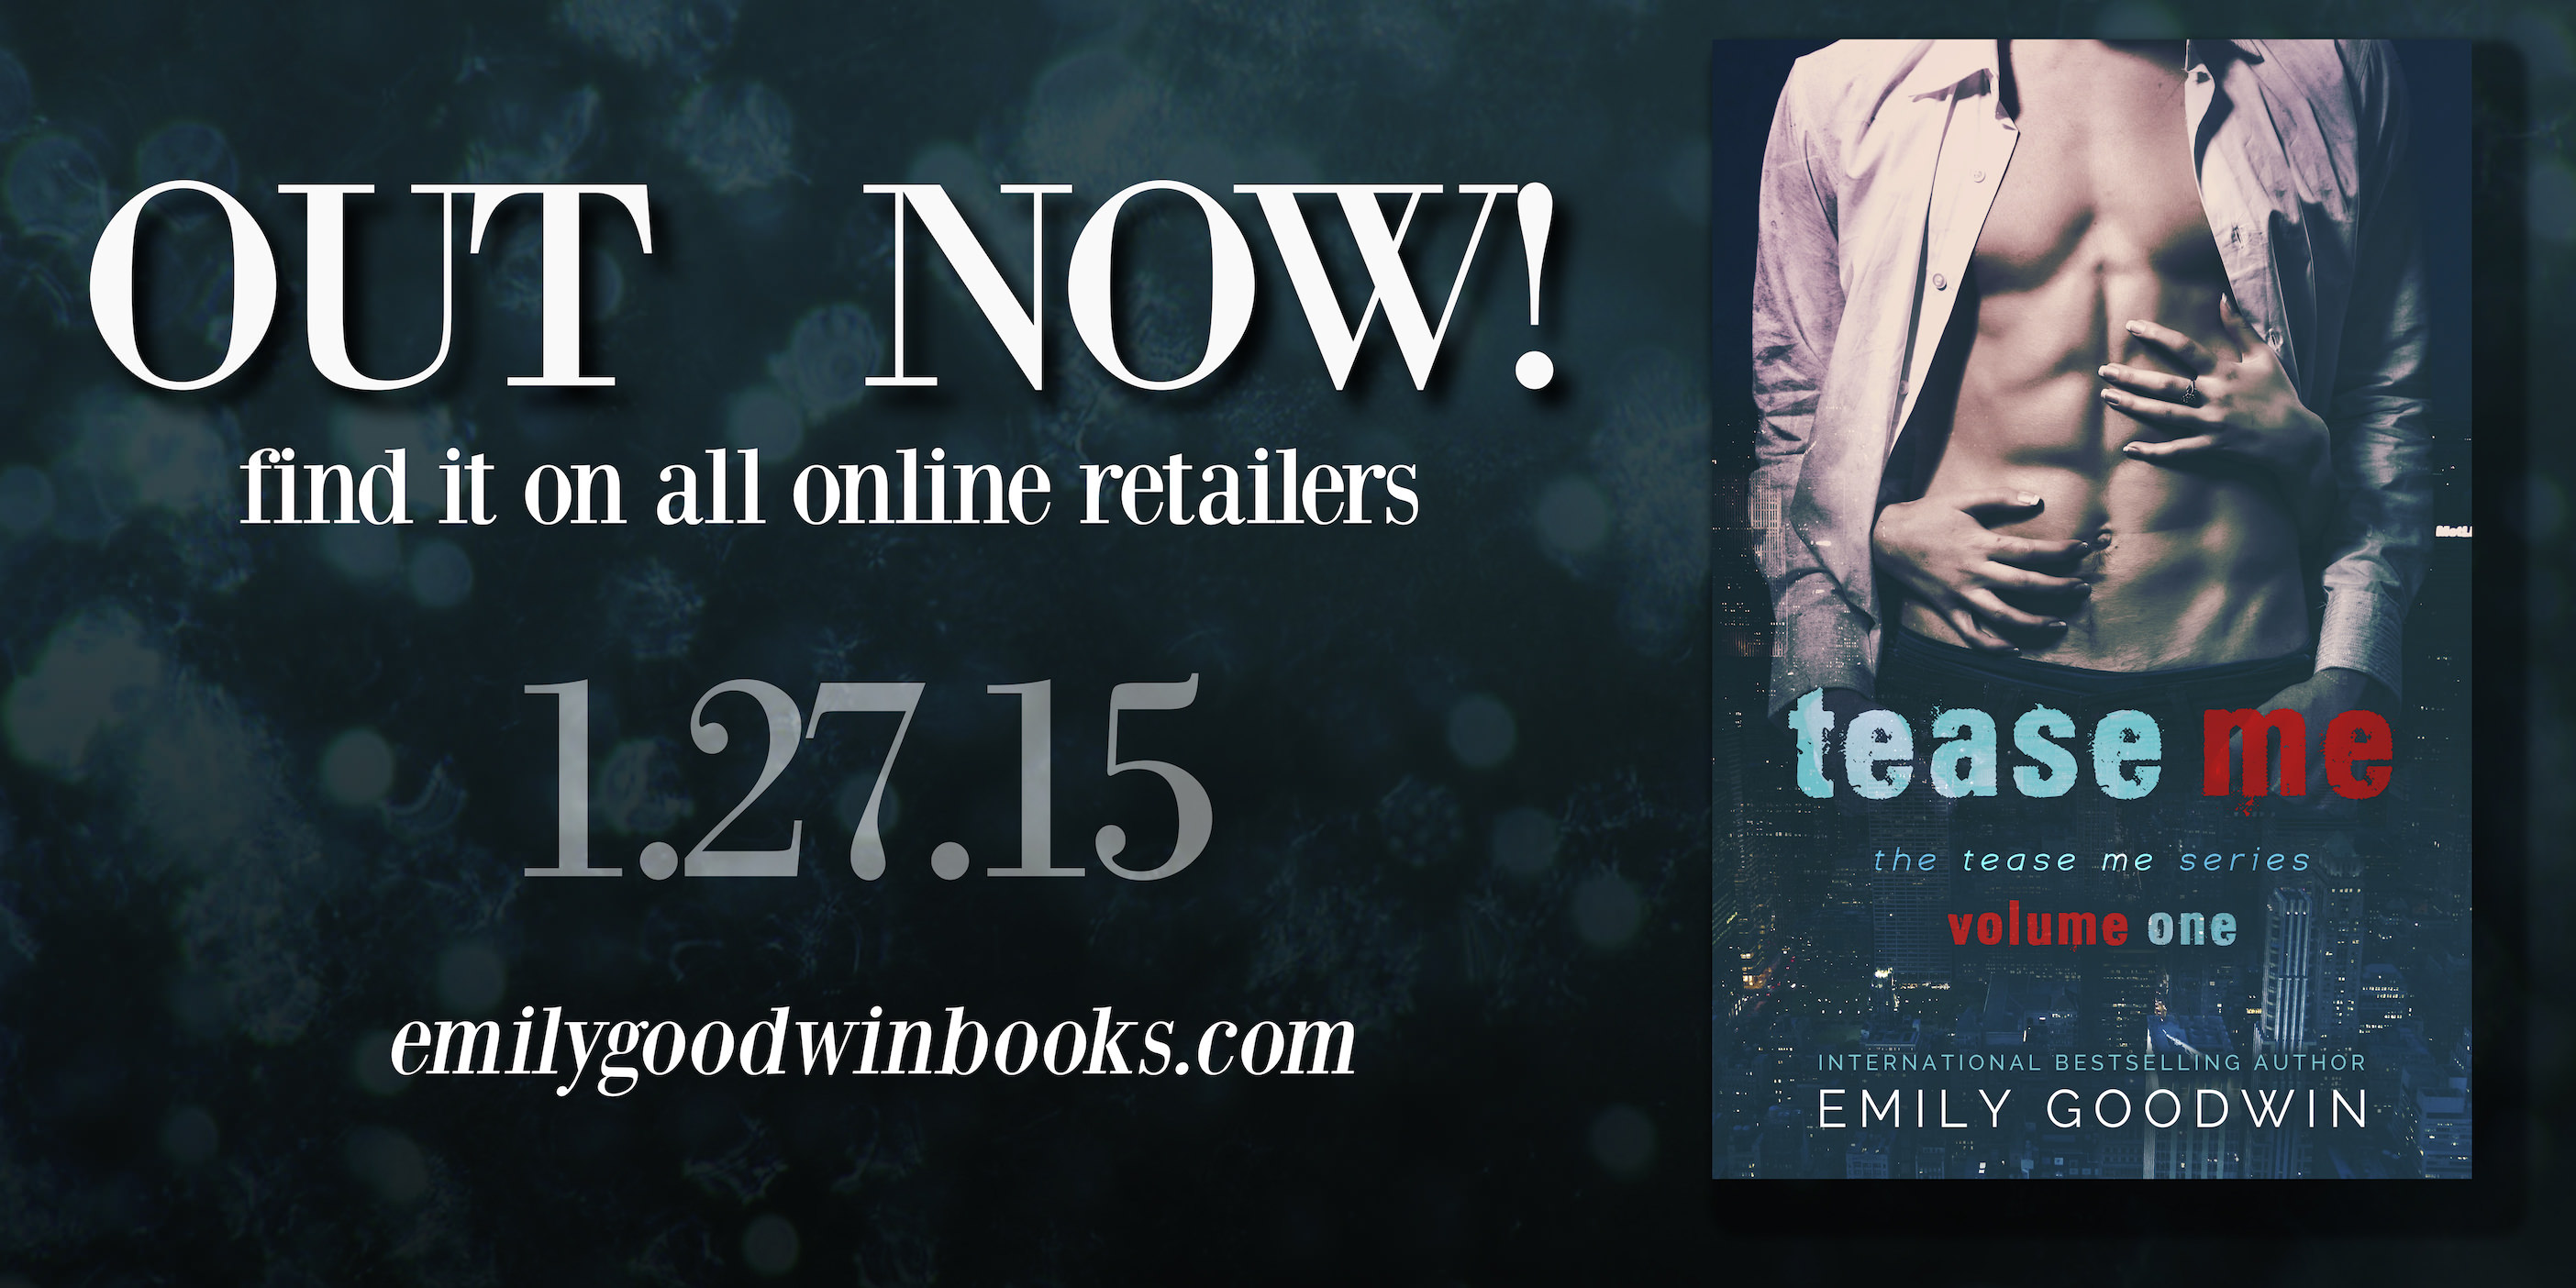 Tease Me by Emily Goodwin – Release Day!